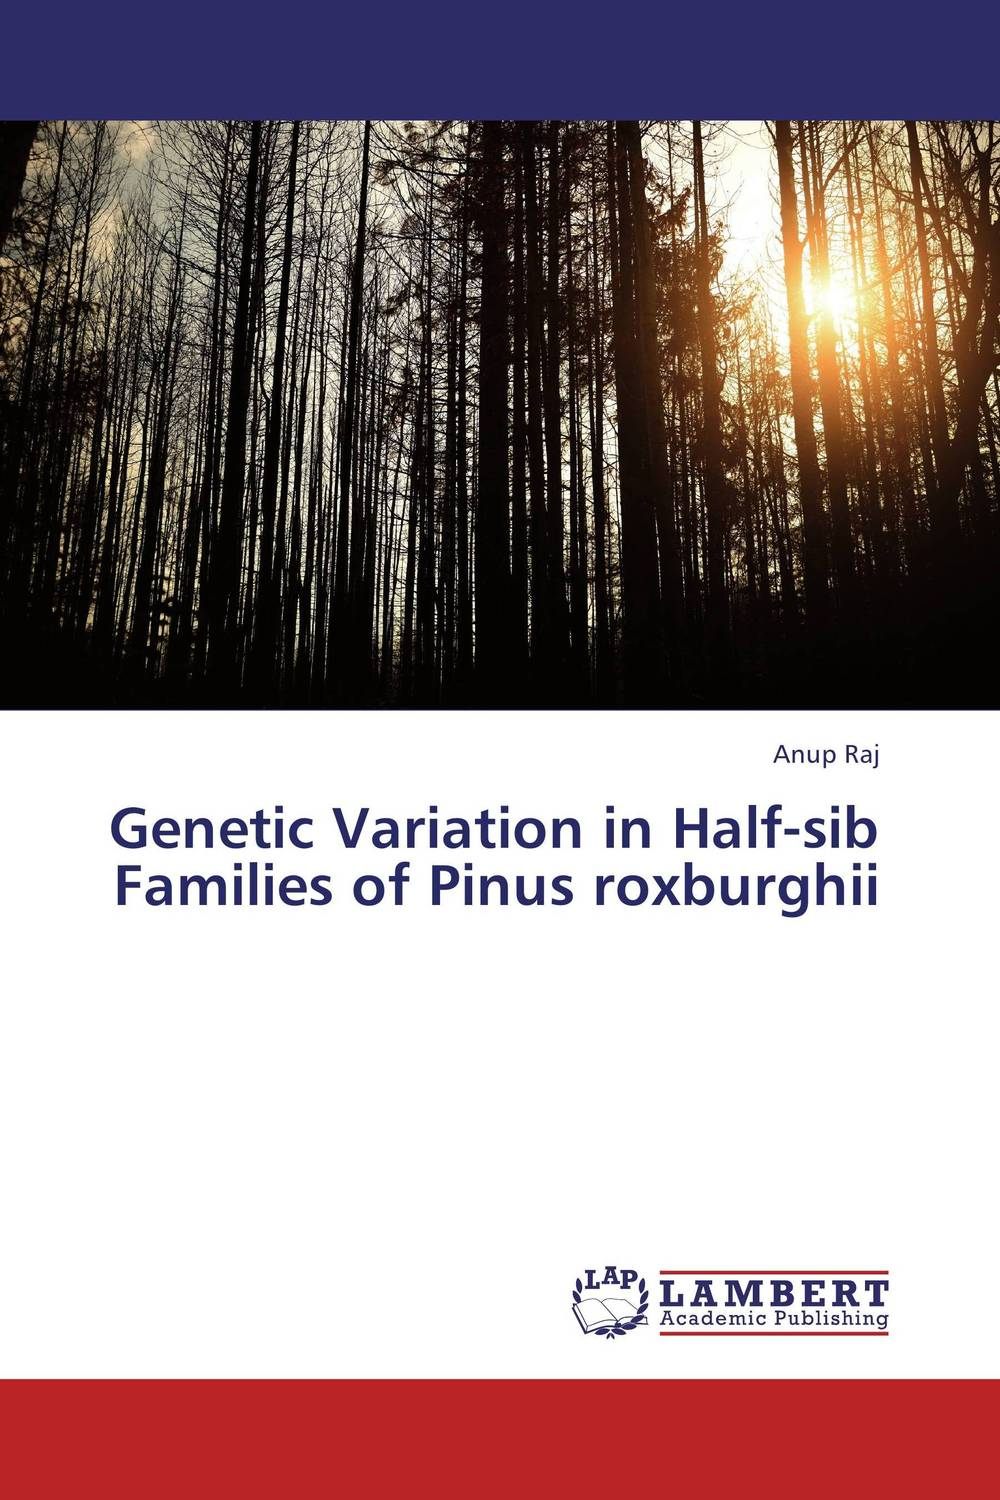 Genetic Variation in Half-sib Families of Pinus roxburghii linguistic variation in a multilingual setting